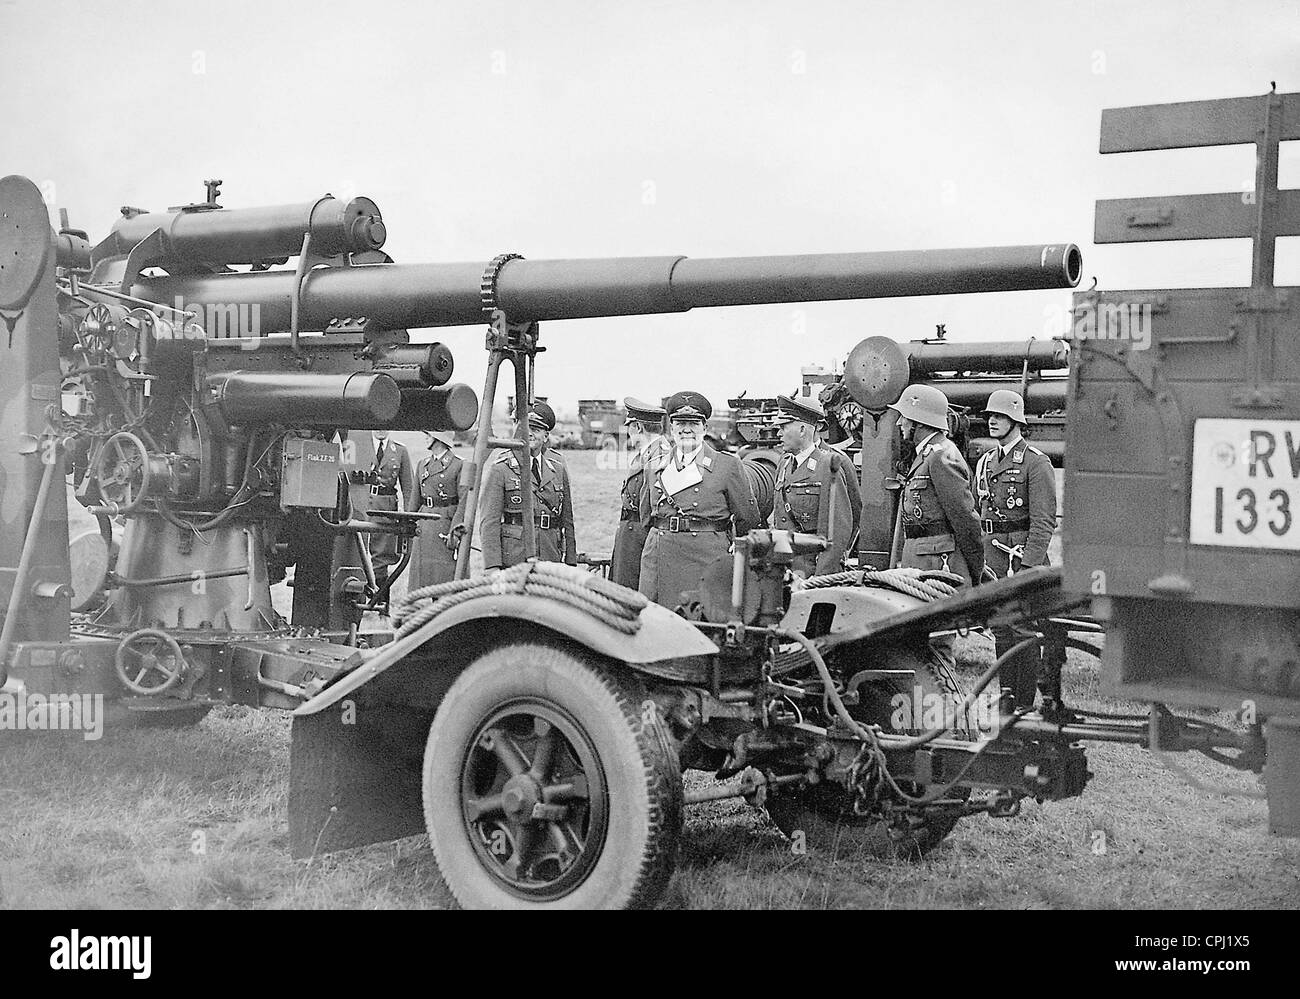 Hermann Goring and Erhardt Milch during the visit of anti-aircraft guns, 1935 - Stock Image